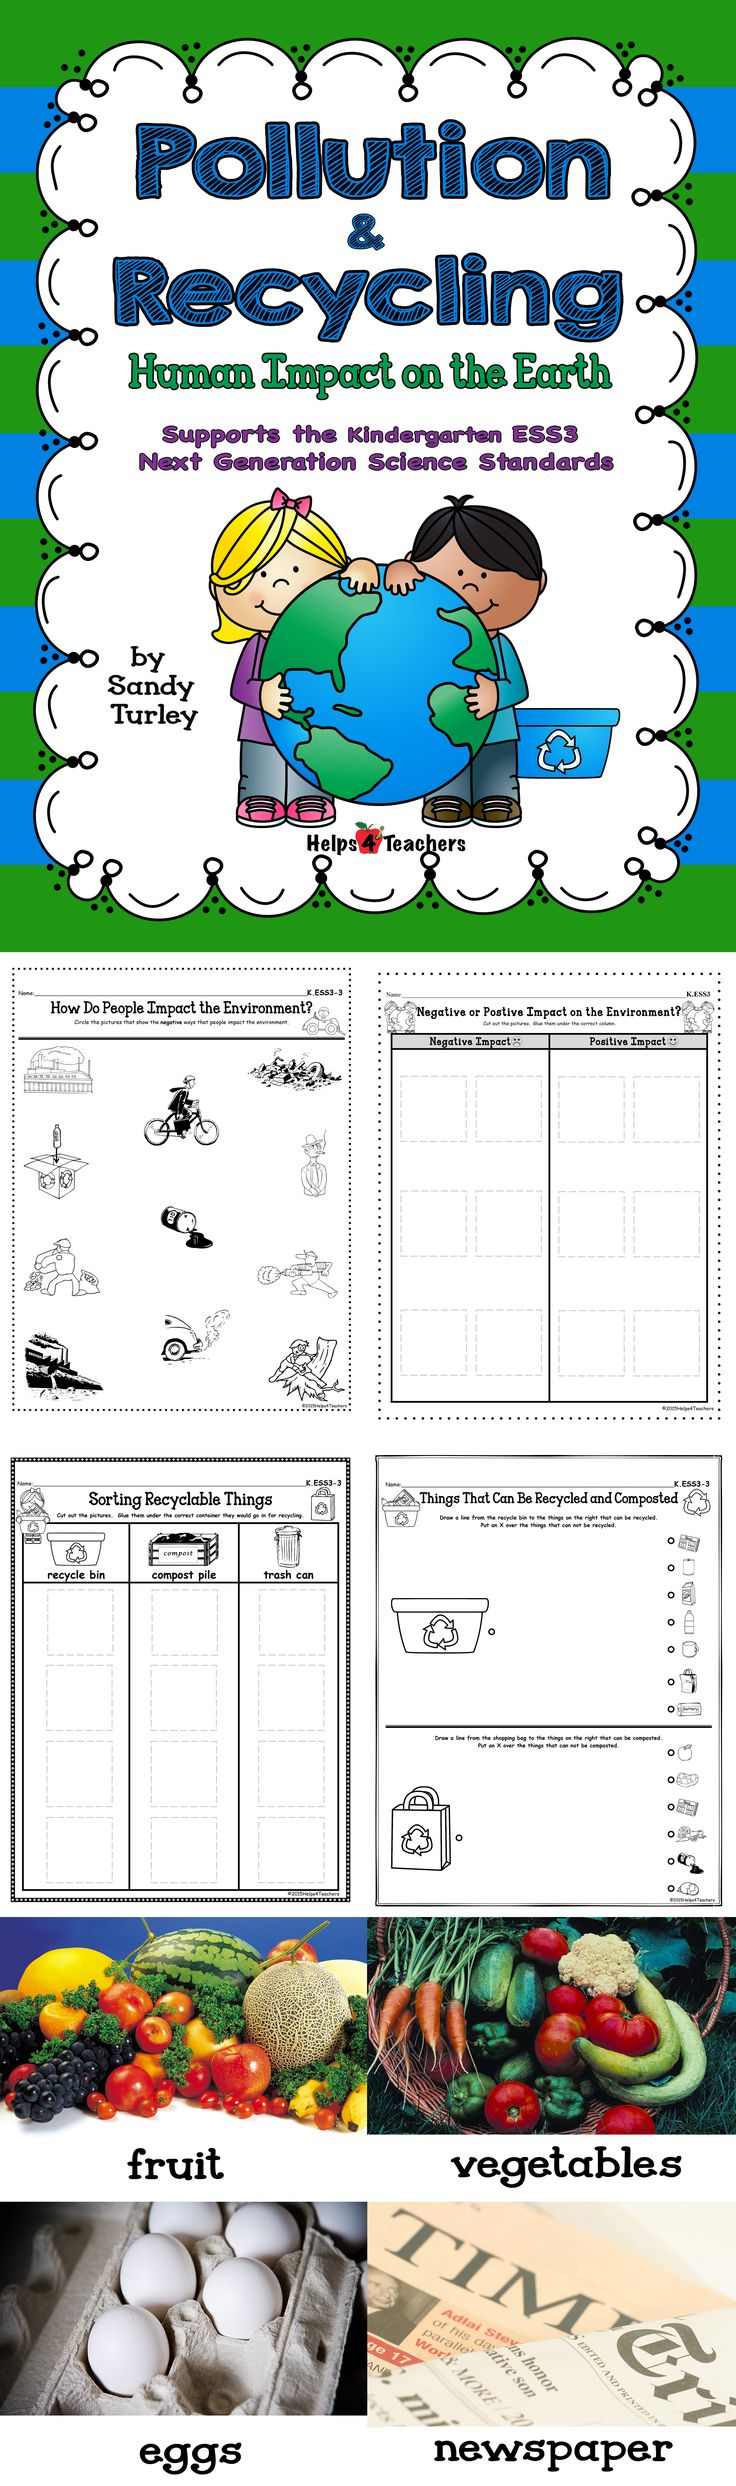 $ AWESOME! This packet supports the Kindergarten Next Generation Science Standard ESS3 and includes everything needed to teach about things that impact/hurt and help our environment, and everything needed to teach about what can and can't be recycled as well as what can and can't be composted.  Includes full color photographs that can be used to support the lesson and small photographs that can be used for two different sorting activities.